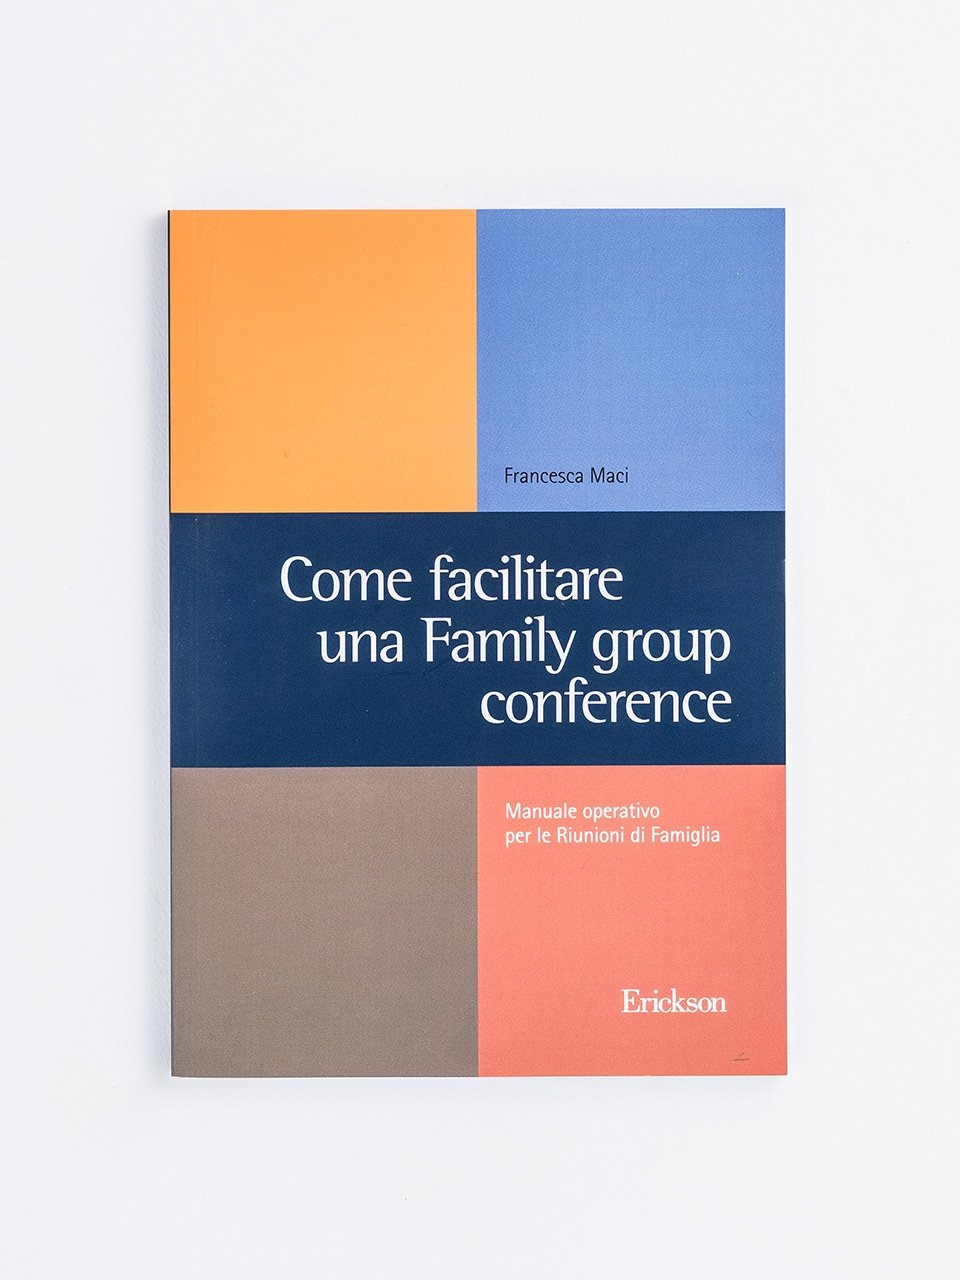 Come facilitare una Family group conference - Interazione Sociale - Erickson